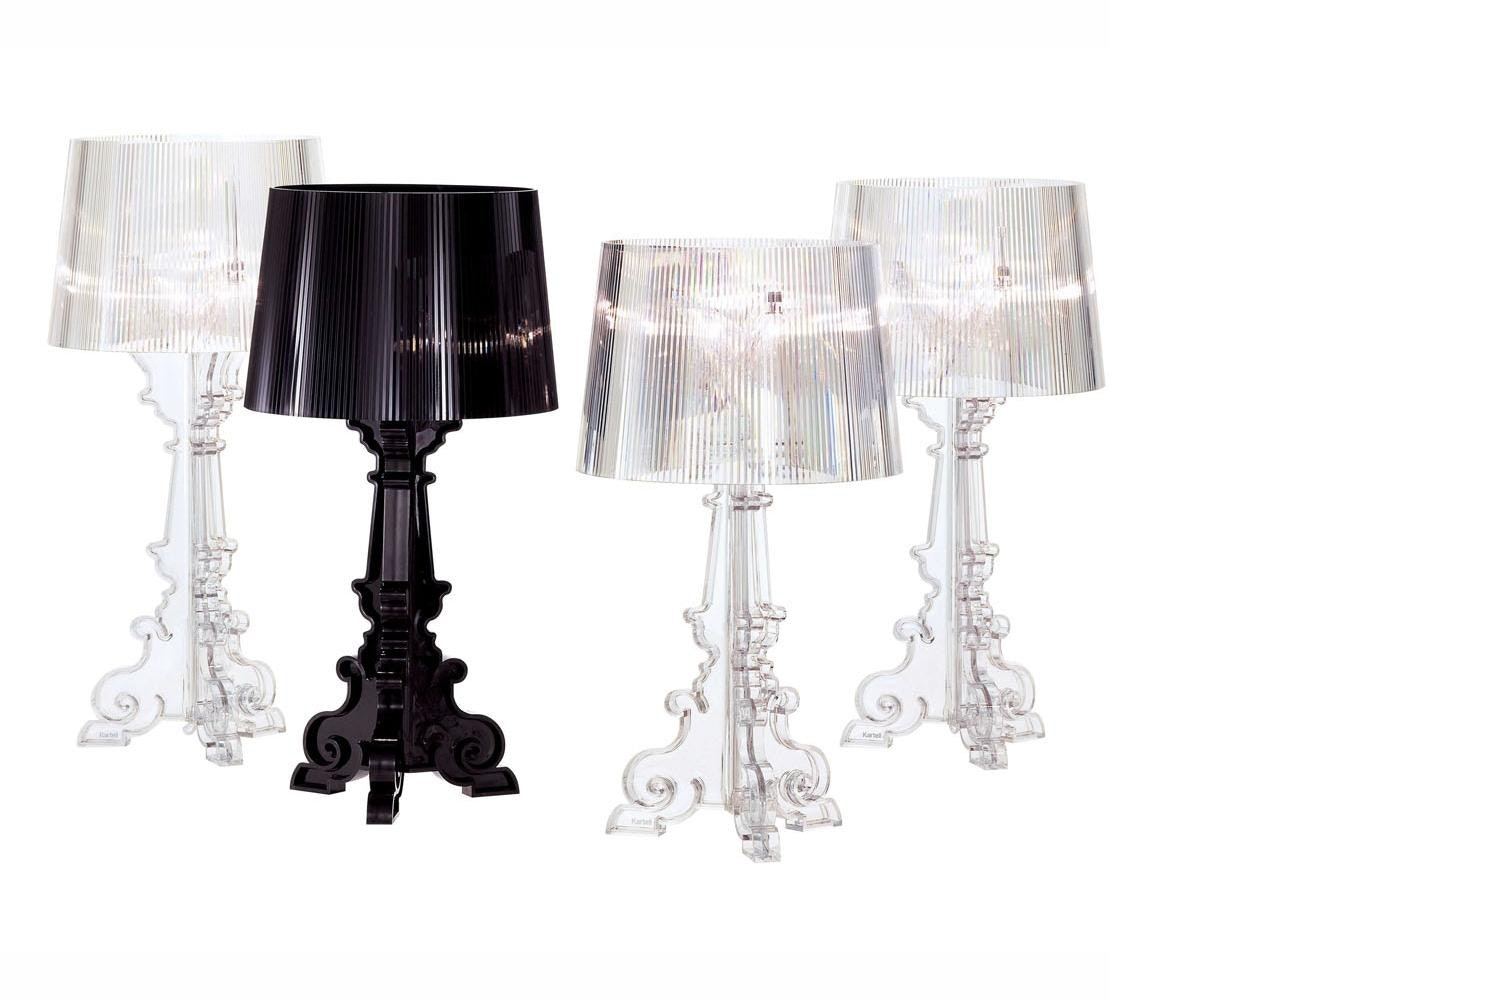 Bourgie Table Lamp by Ferruccio Laviani for Kartell